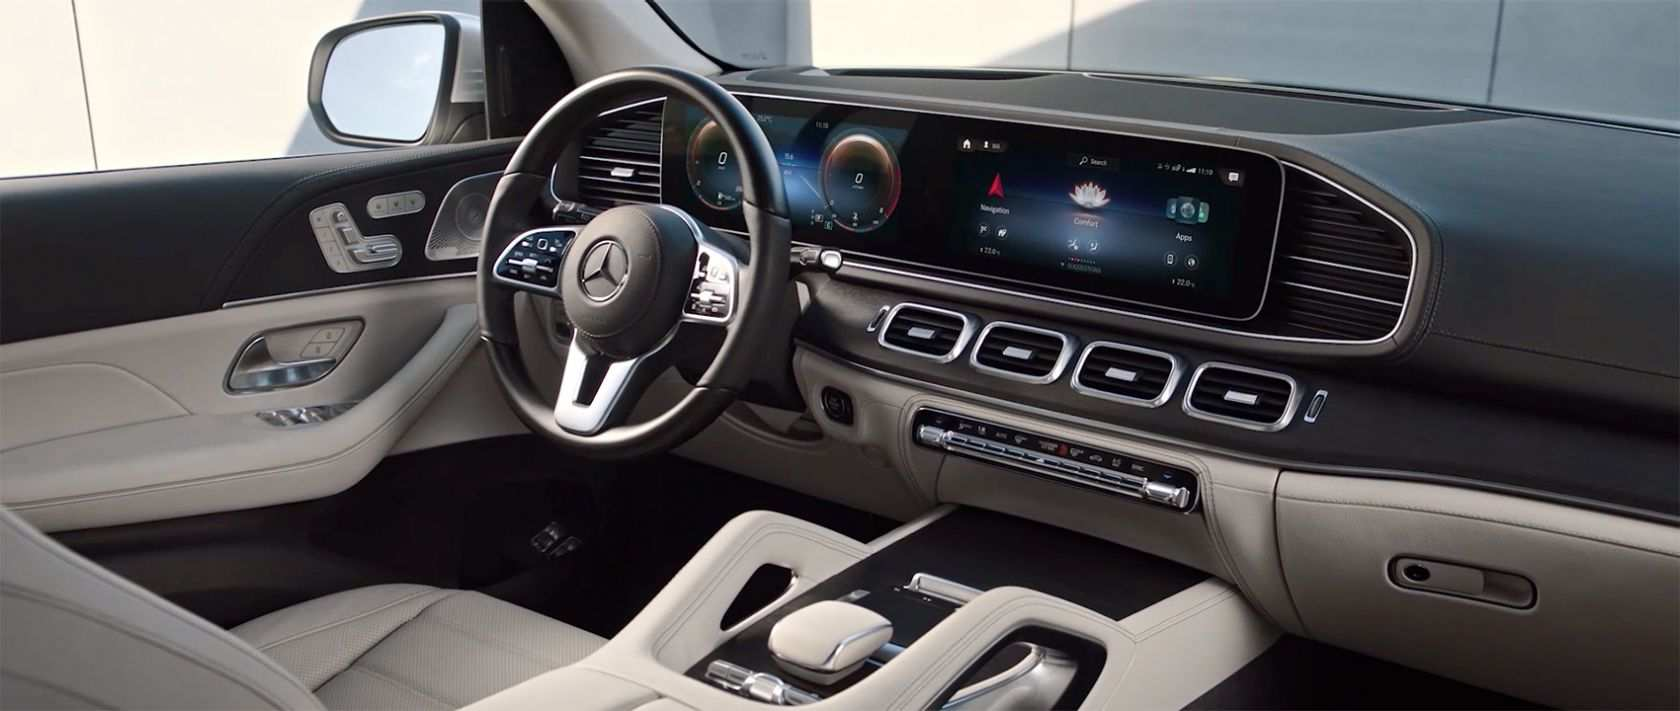 26 New Mercedes Interior 2019 Picture